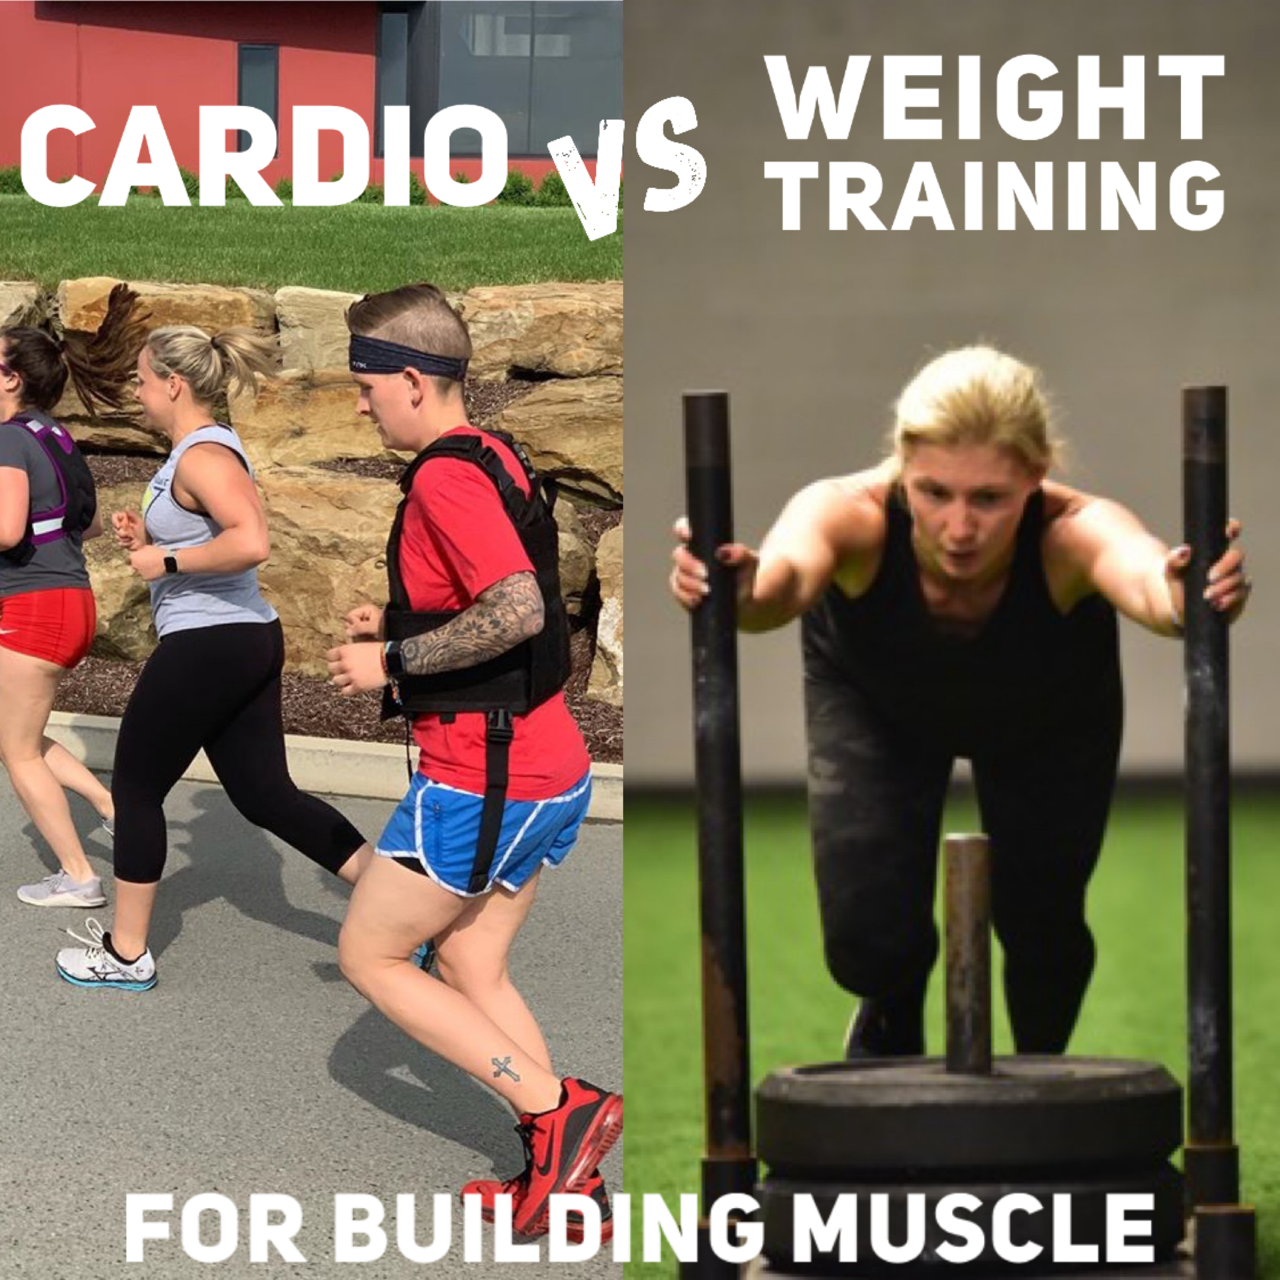 Cardio vs. Weight Training for Building Muscle